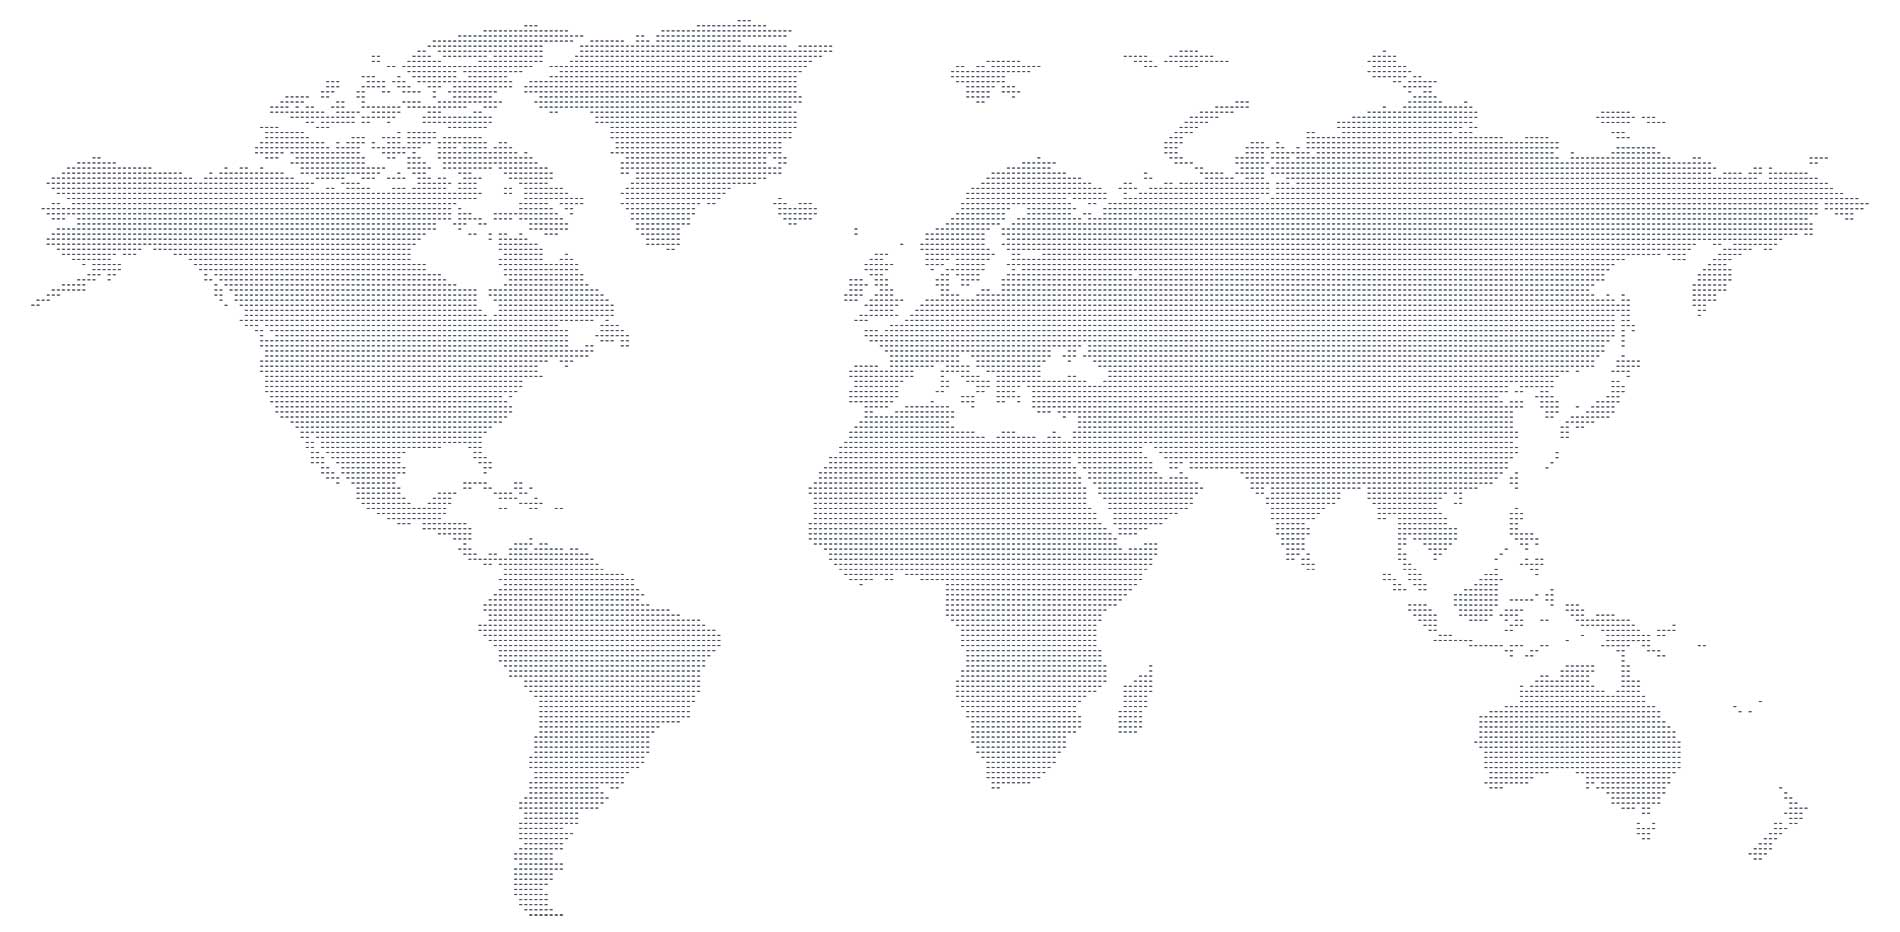 Emerald-EMS-home-page-global-locations-Map4